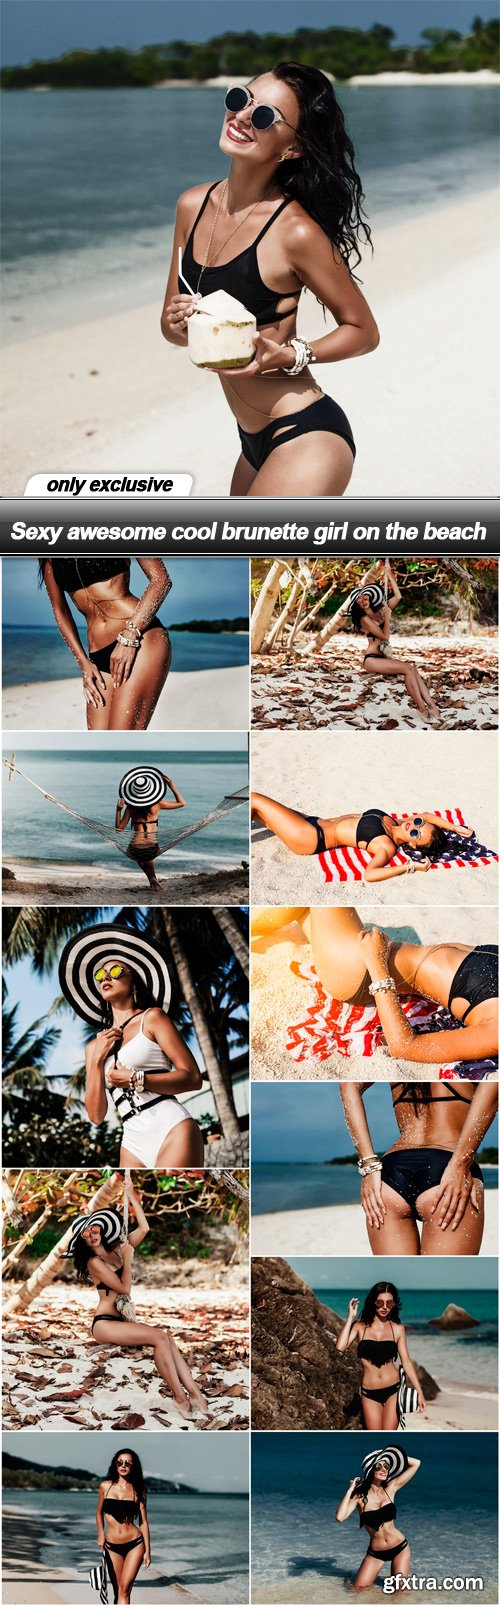 Sexy awesome cool brunette girl on the beach - 12 UHQ JPEG